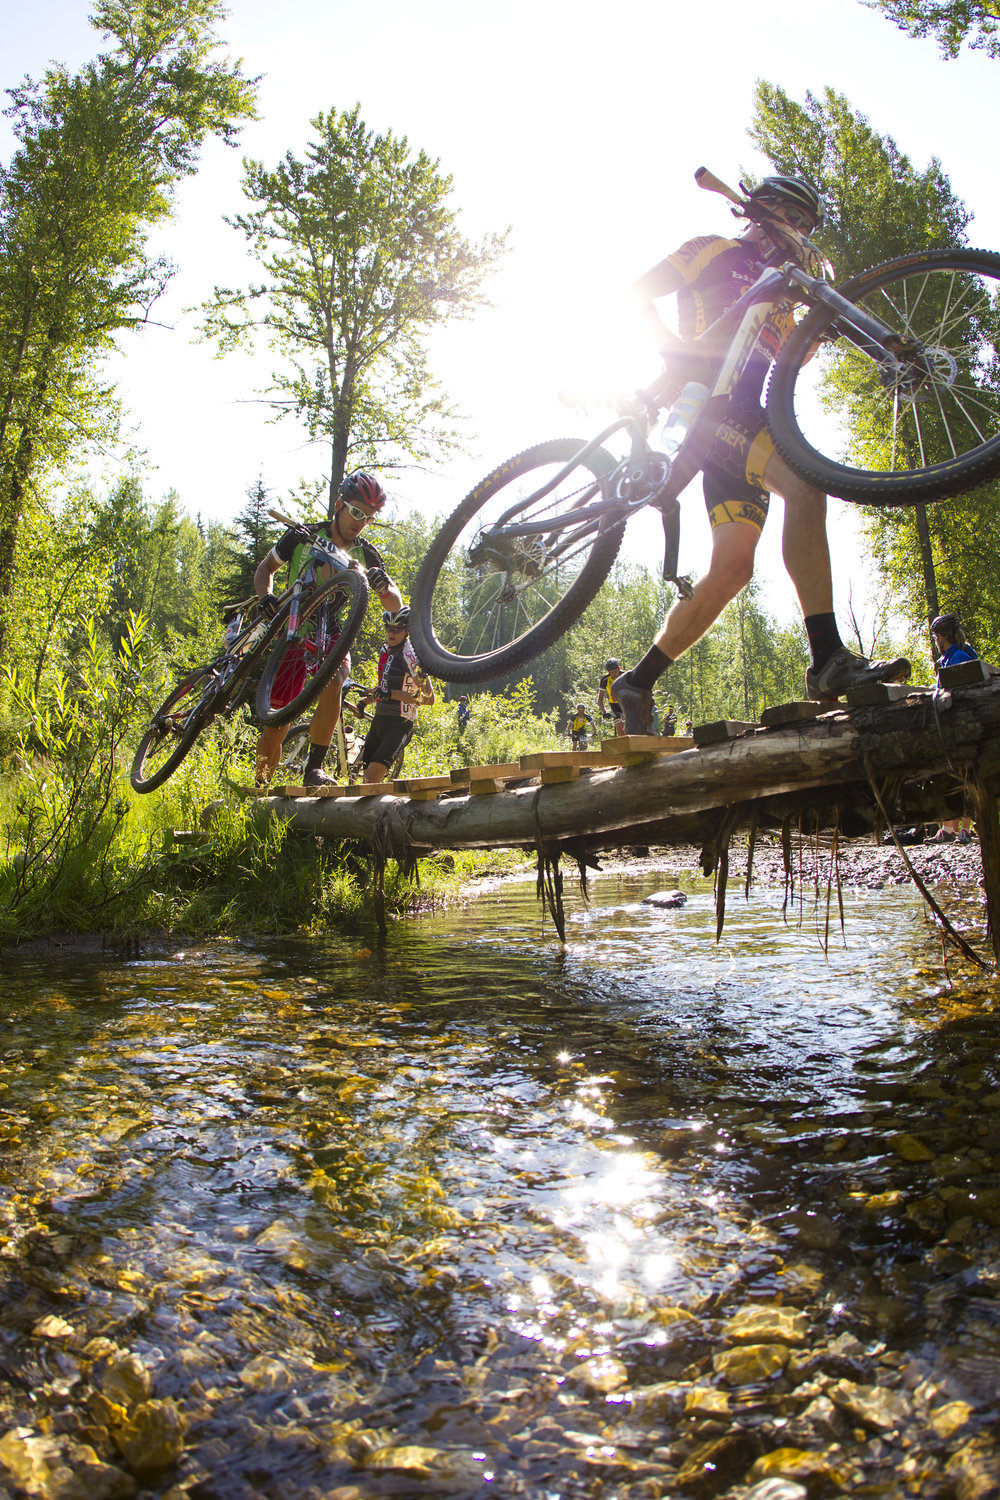 TransRockies Classic mountain bike stage race – stream crossing